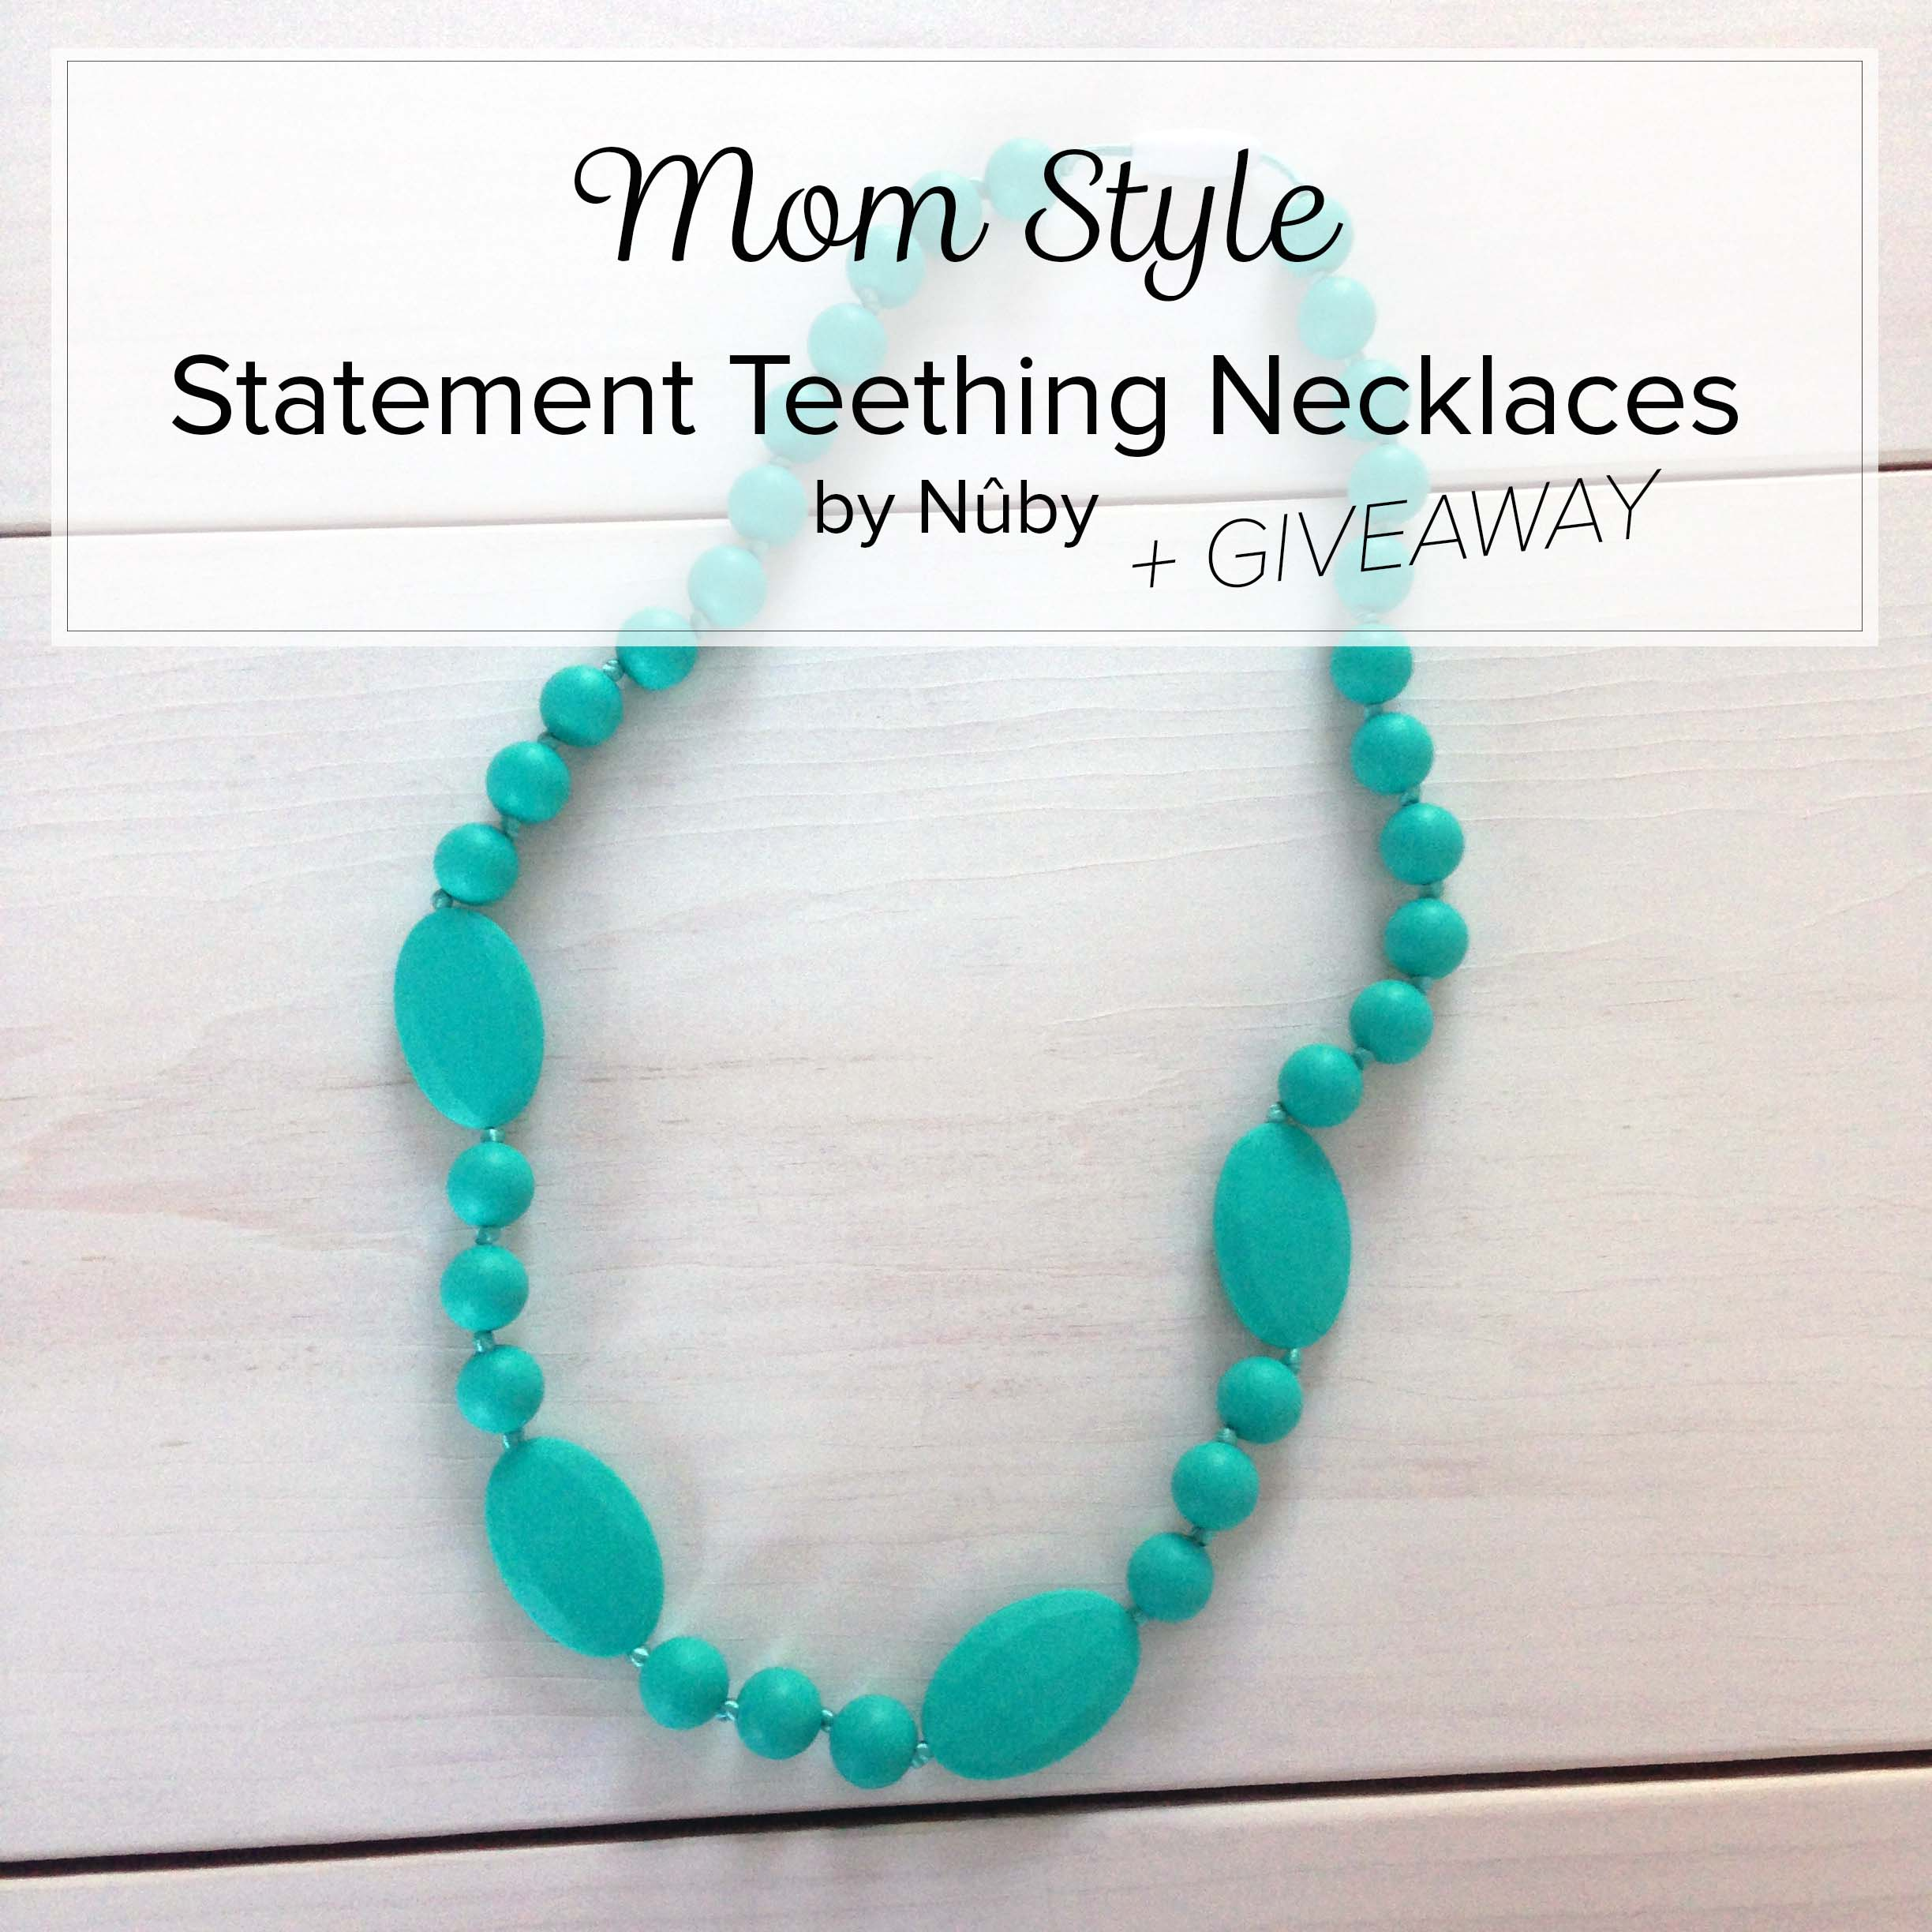 Mom Style Statement Teething Necklaces by Nuby and Giveaway